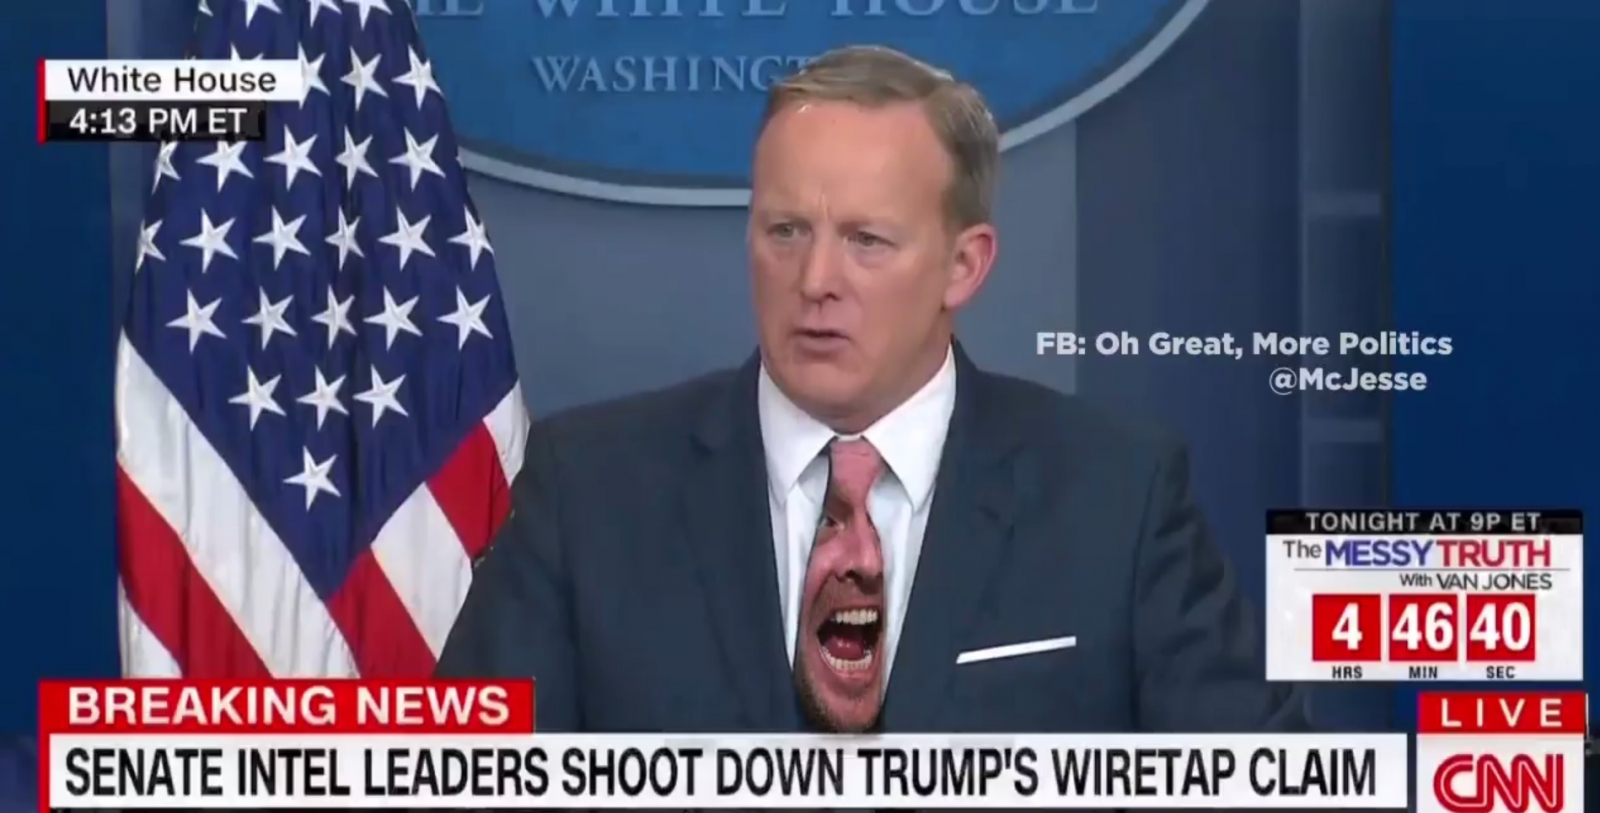 Sean Spicer wore a tie on TV and someone helpfully turned ...